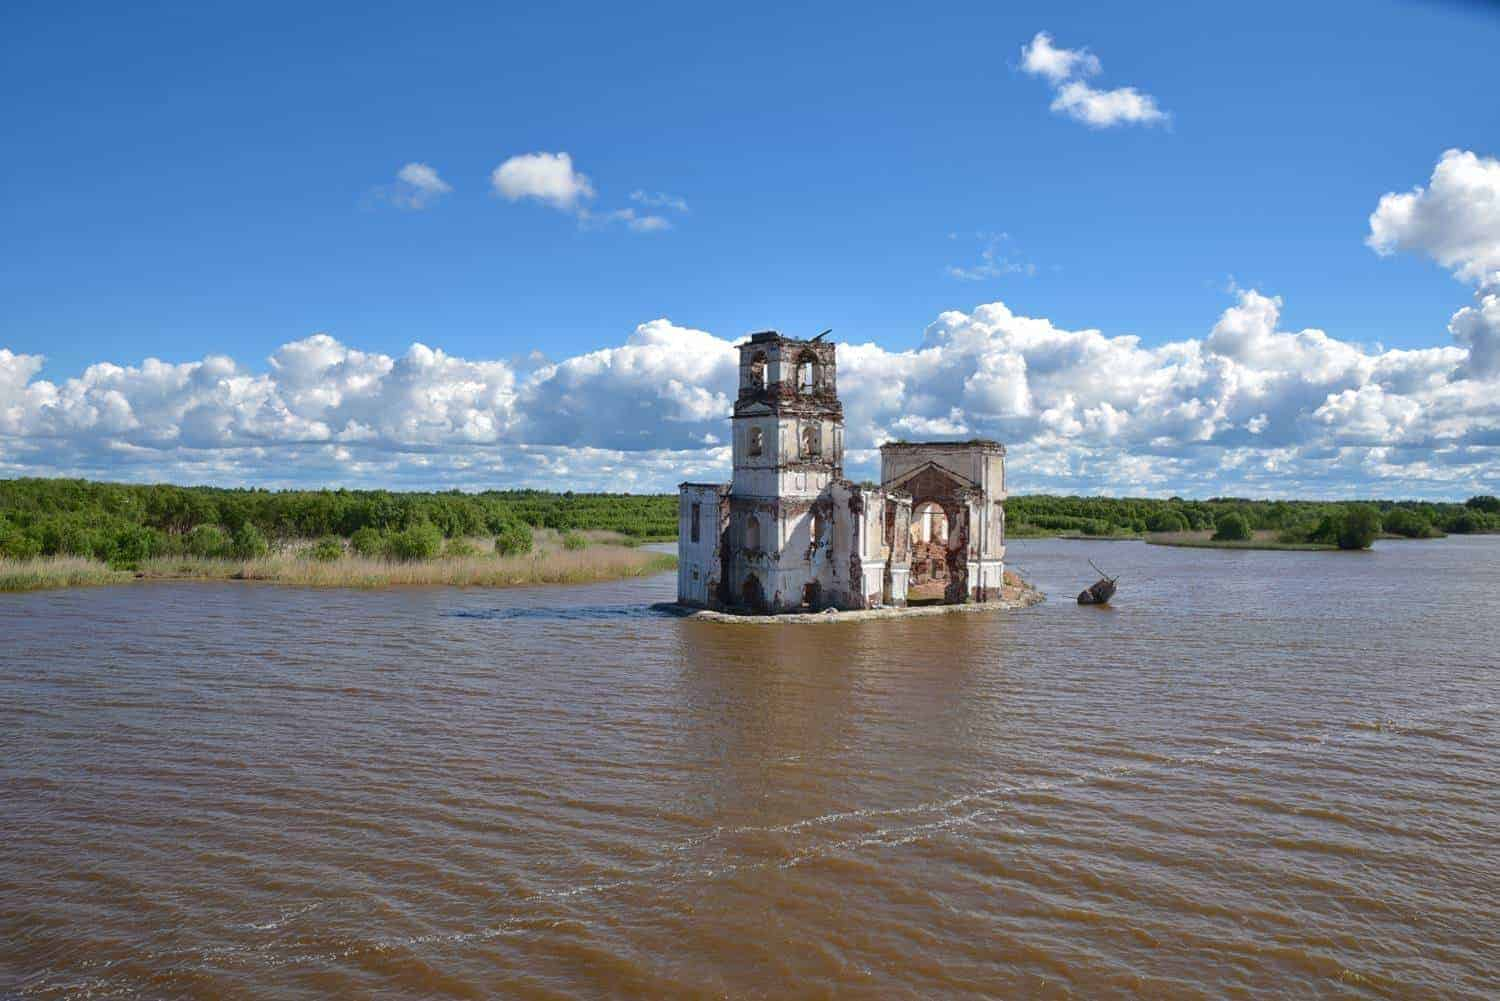 abandoned church in the middle of the river.  one of the unique things you will see on a Waterways Of The Tsars. St Petersburg to Moscow river cruise with viking river cruise.